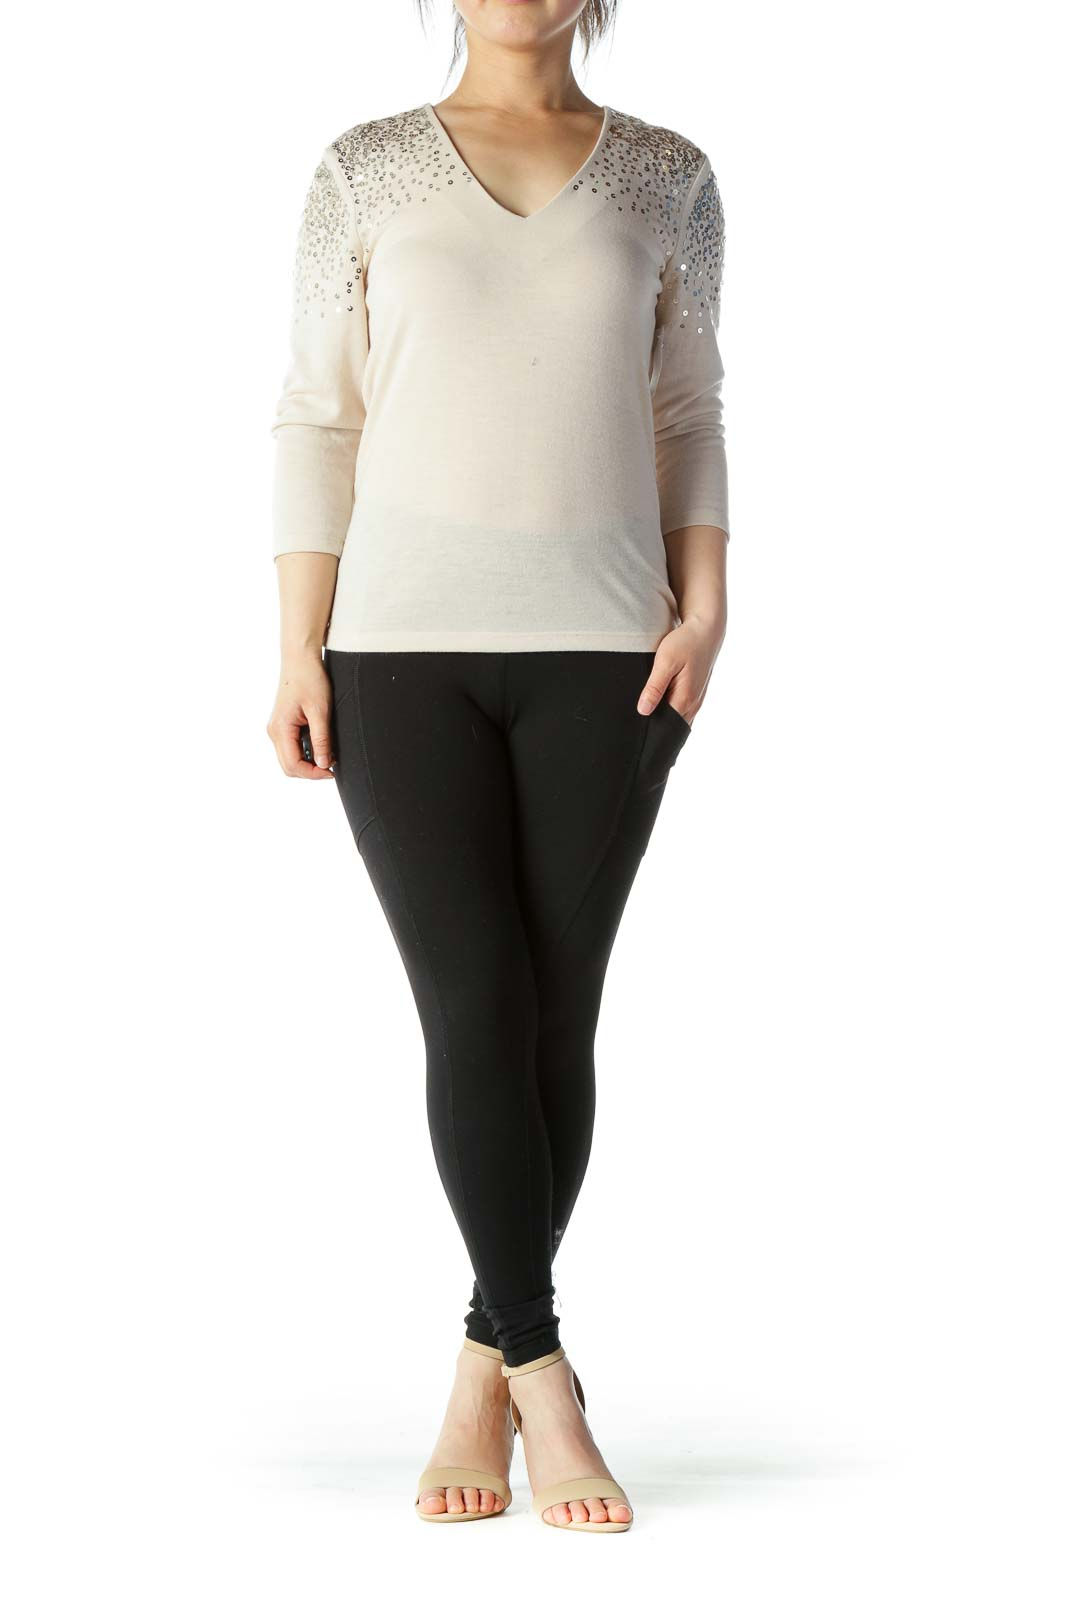 Beige Gold-Sequined Long-Sleeve V-Neck Light-Weight Sweater